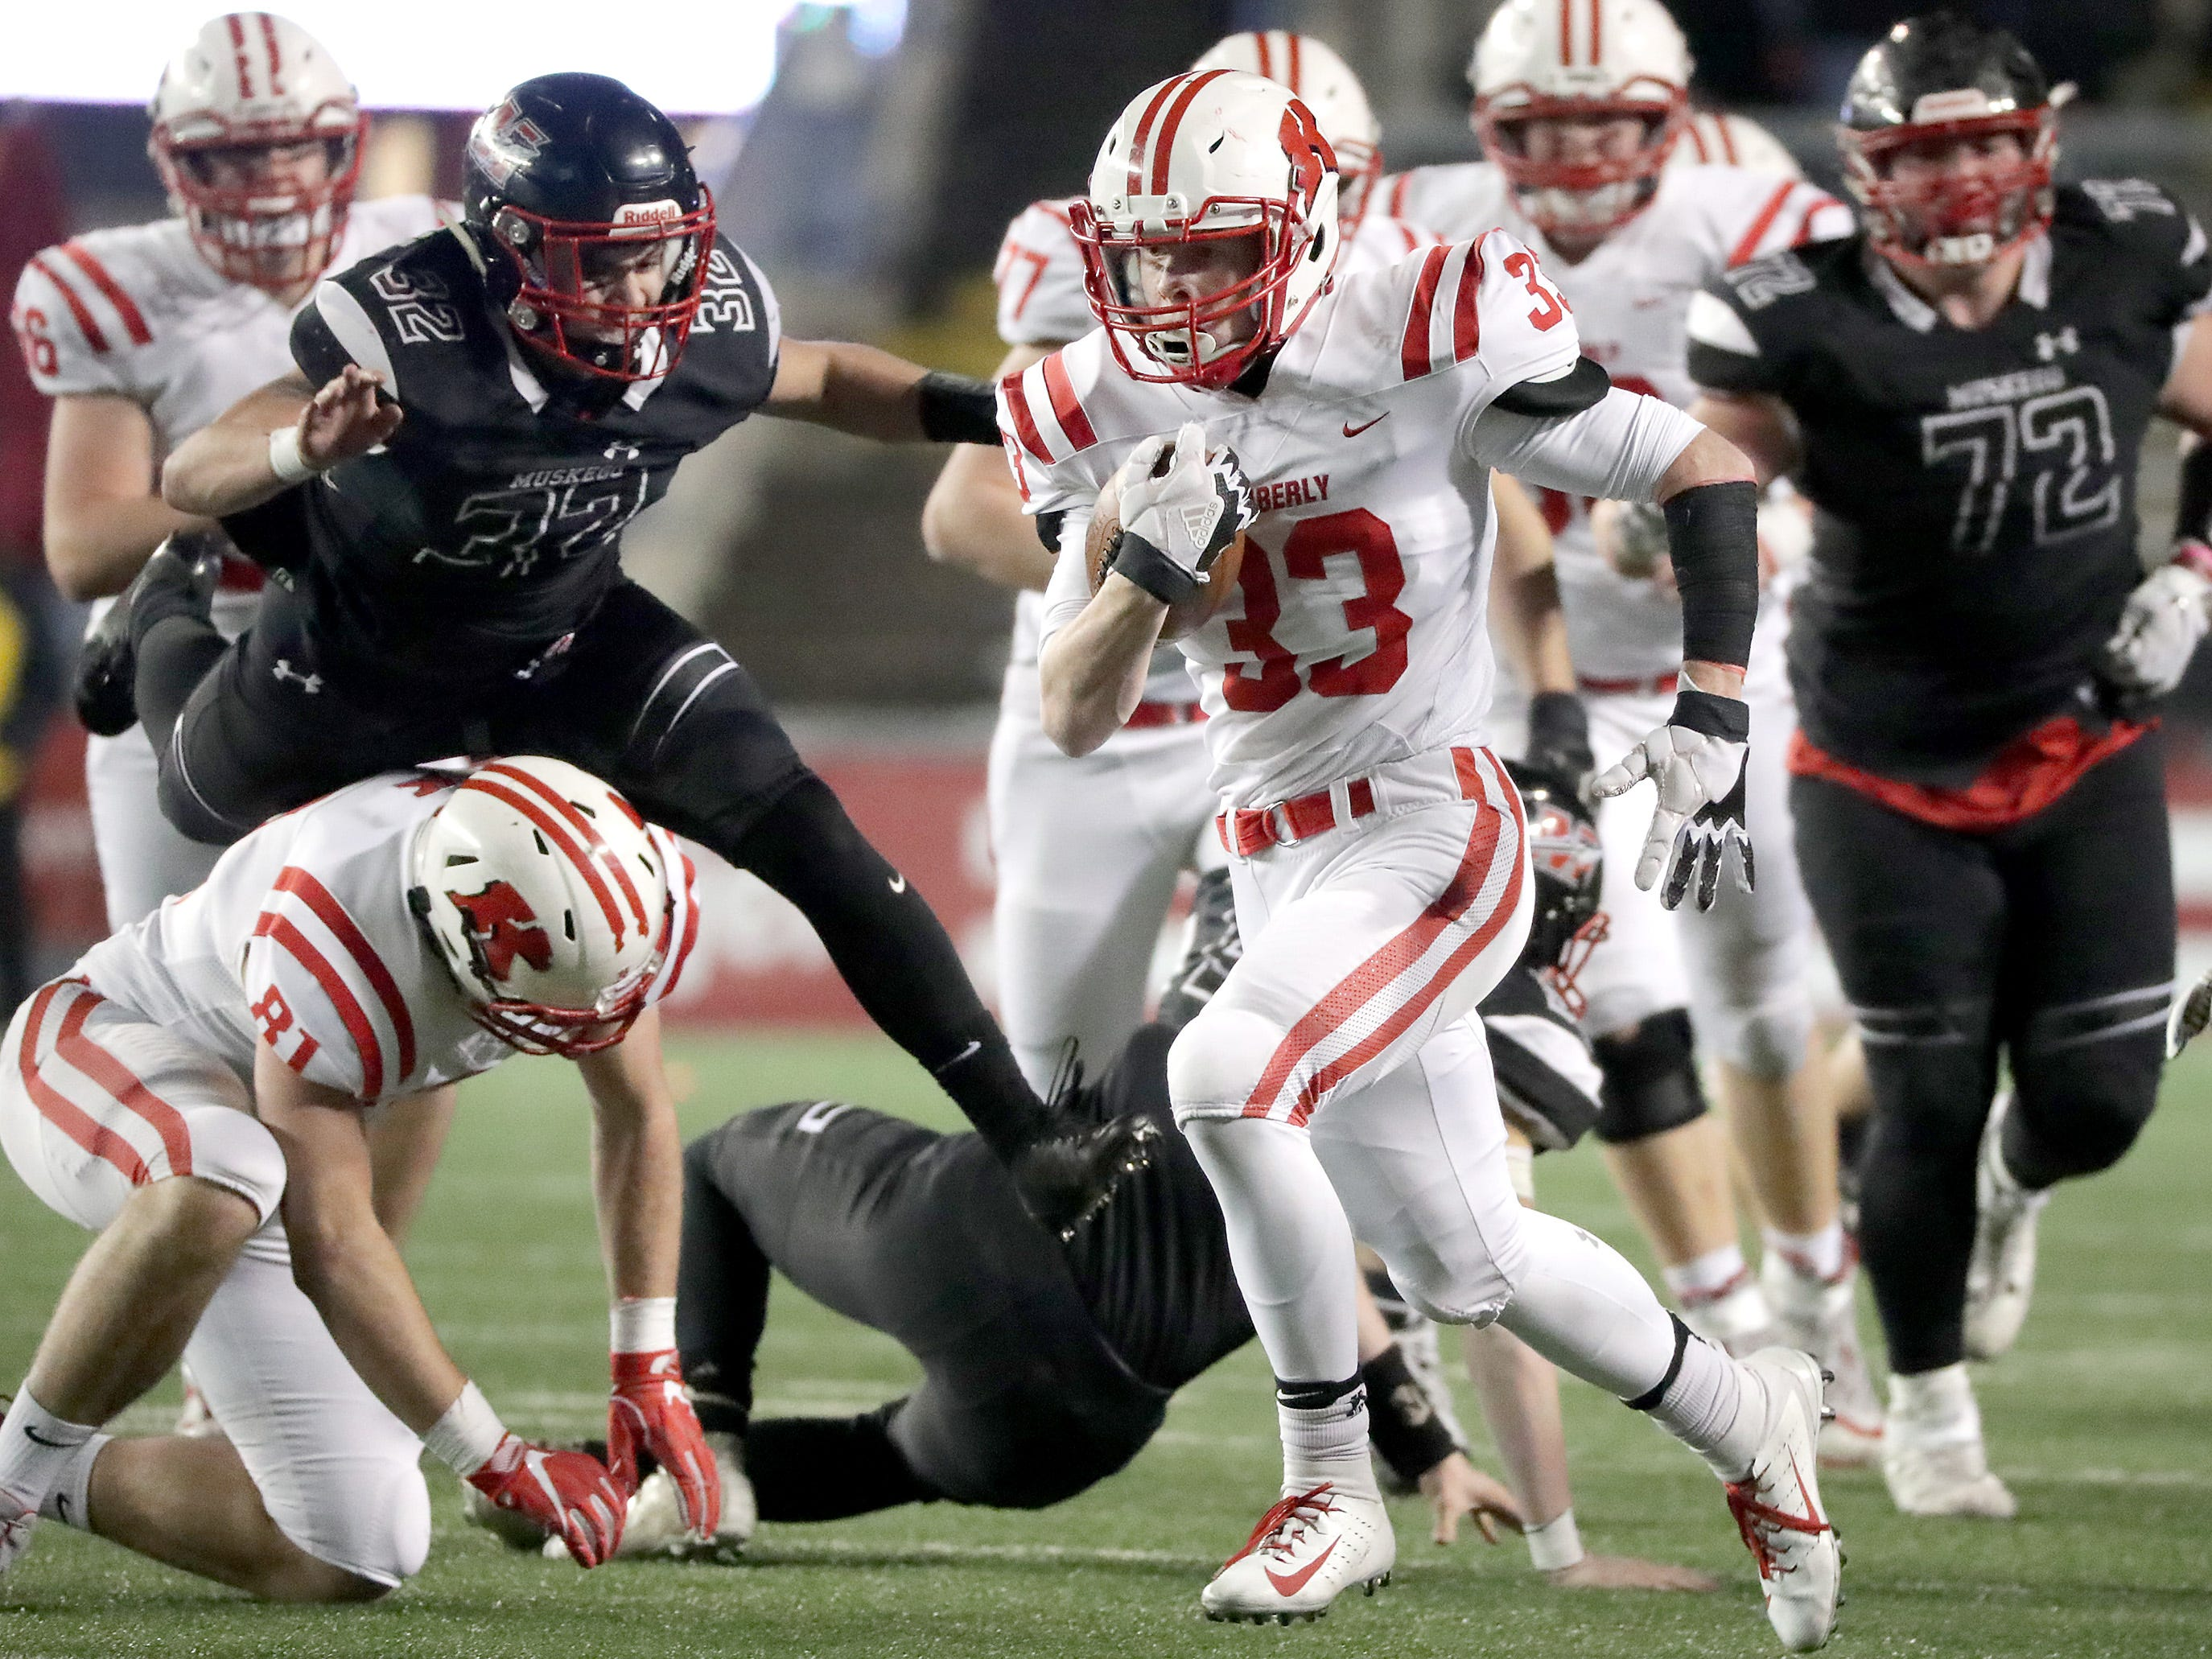 Kimberly High School's #33 Caleb Frazer rushes against Muskego High School during the WIAA Division 1 state championship football game on Friday, November 16, 2018, at Camp Randall in Madison, Wis.